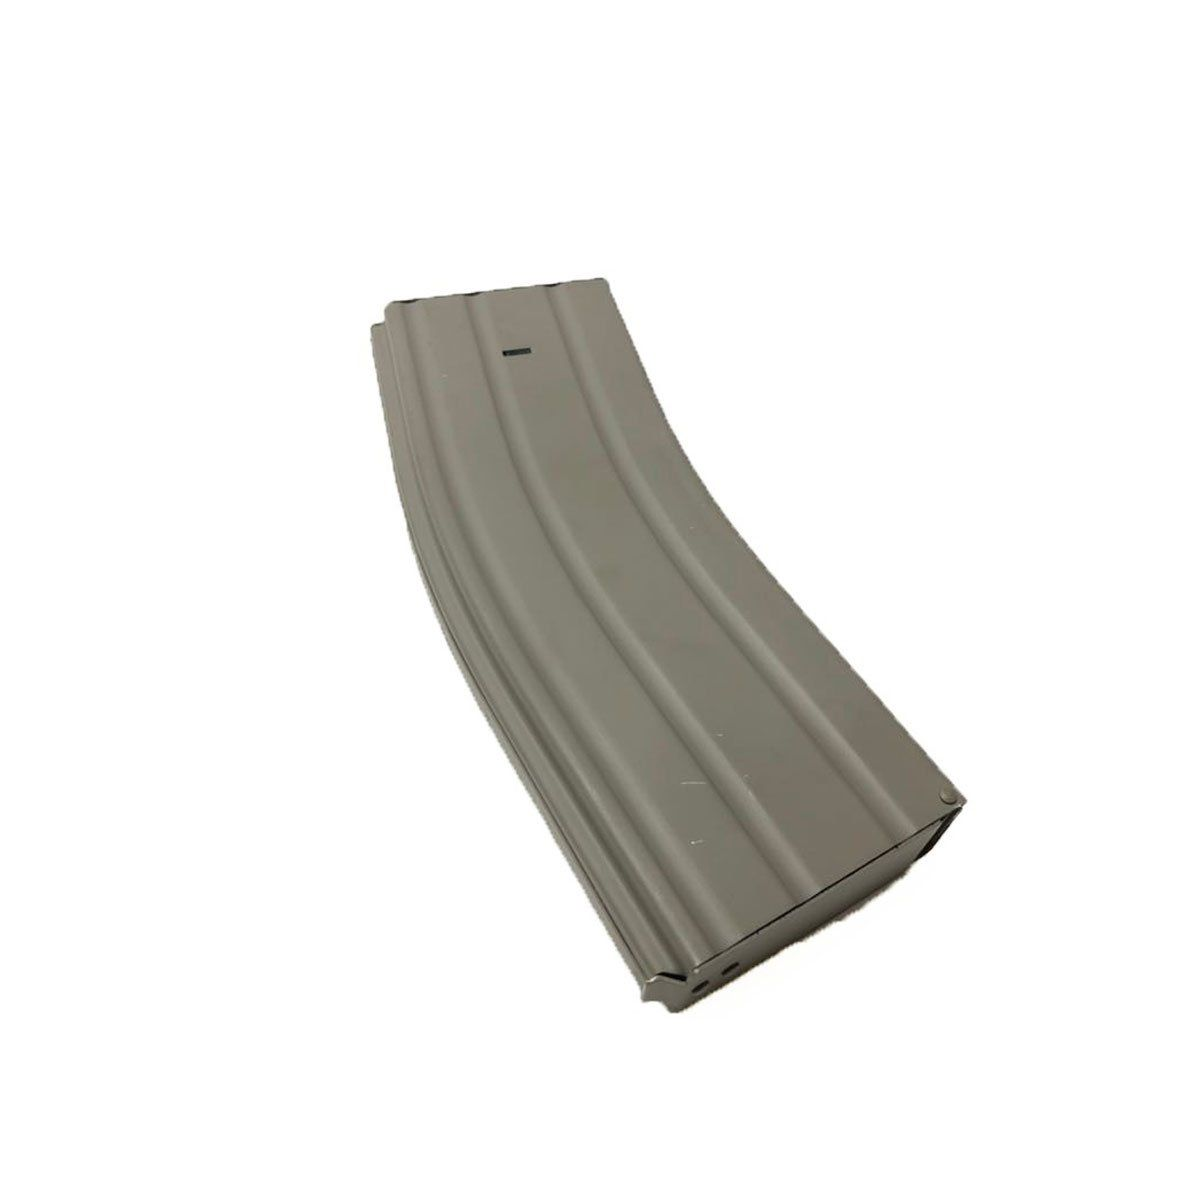 Magazine Airsoft M4 / M16 Hicap 360 Bbs Metal Tan